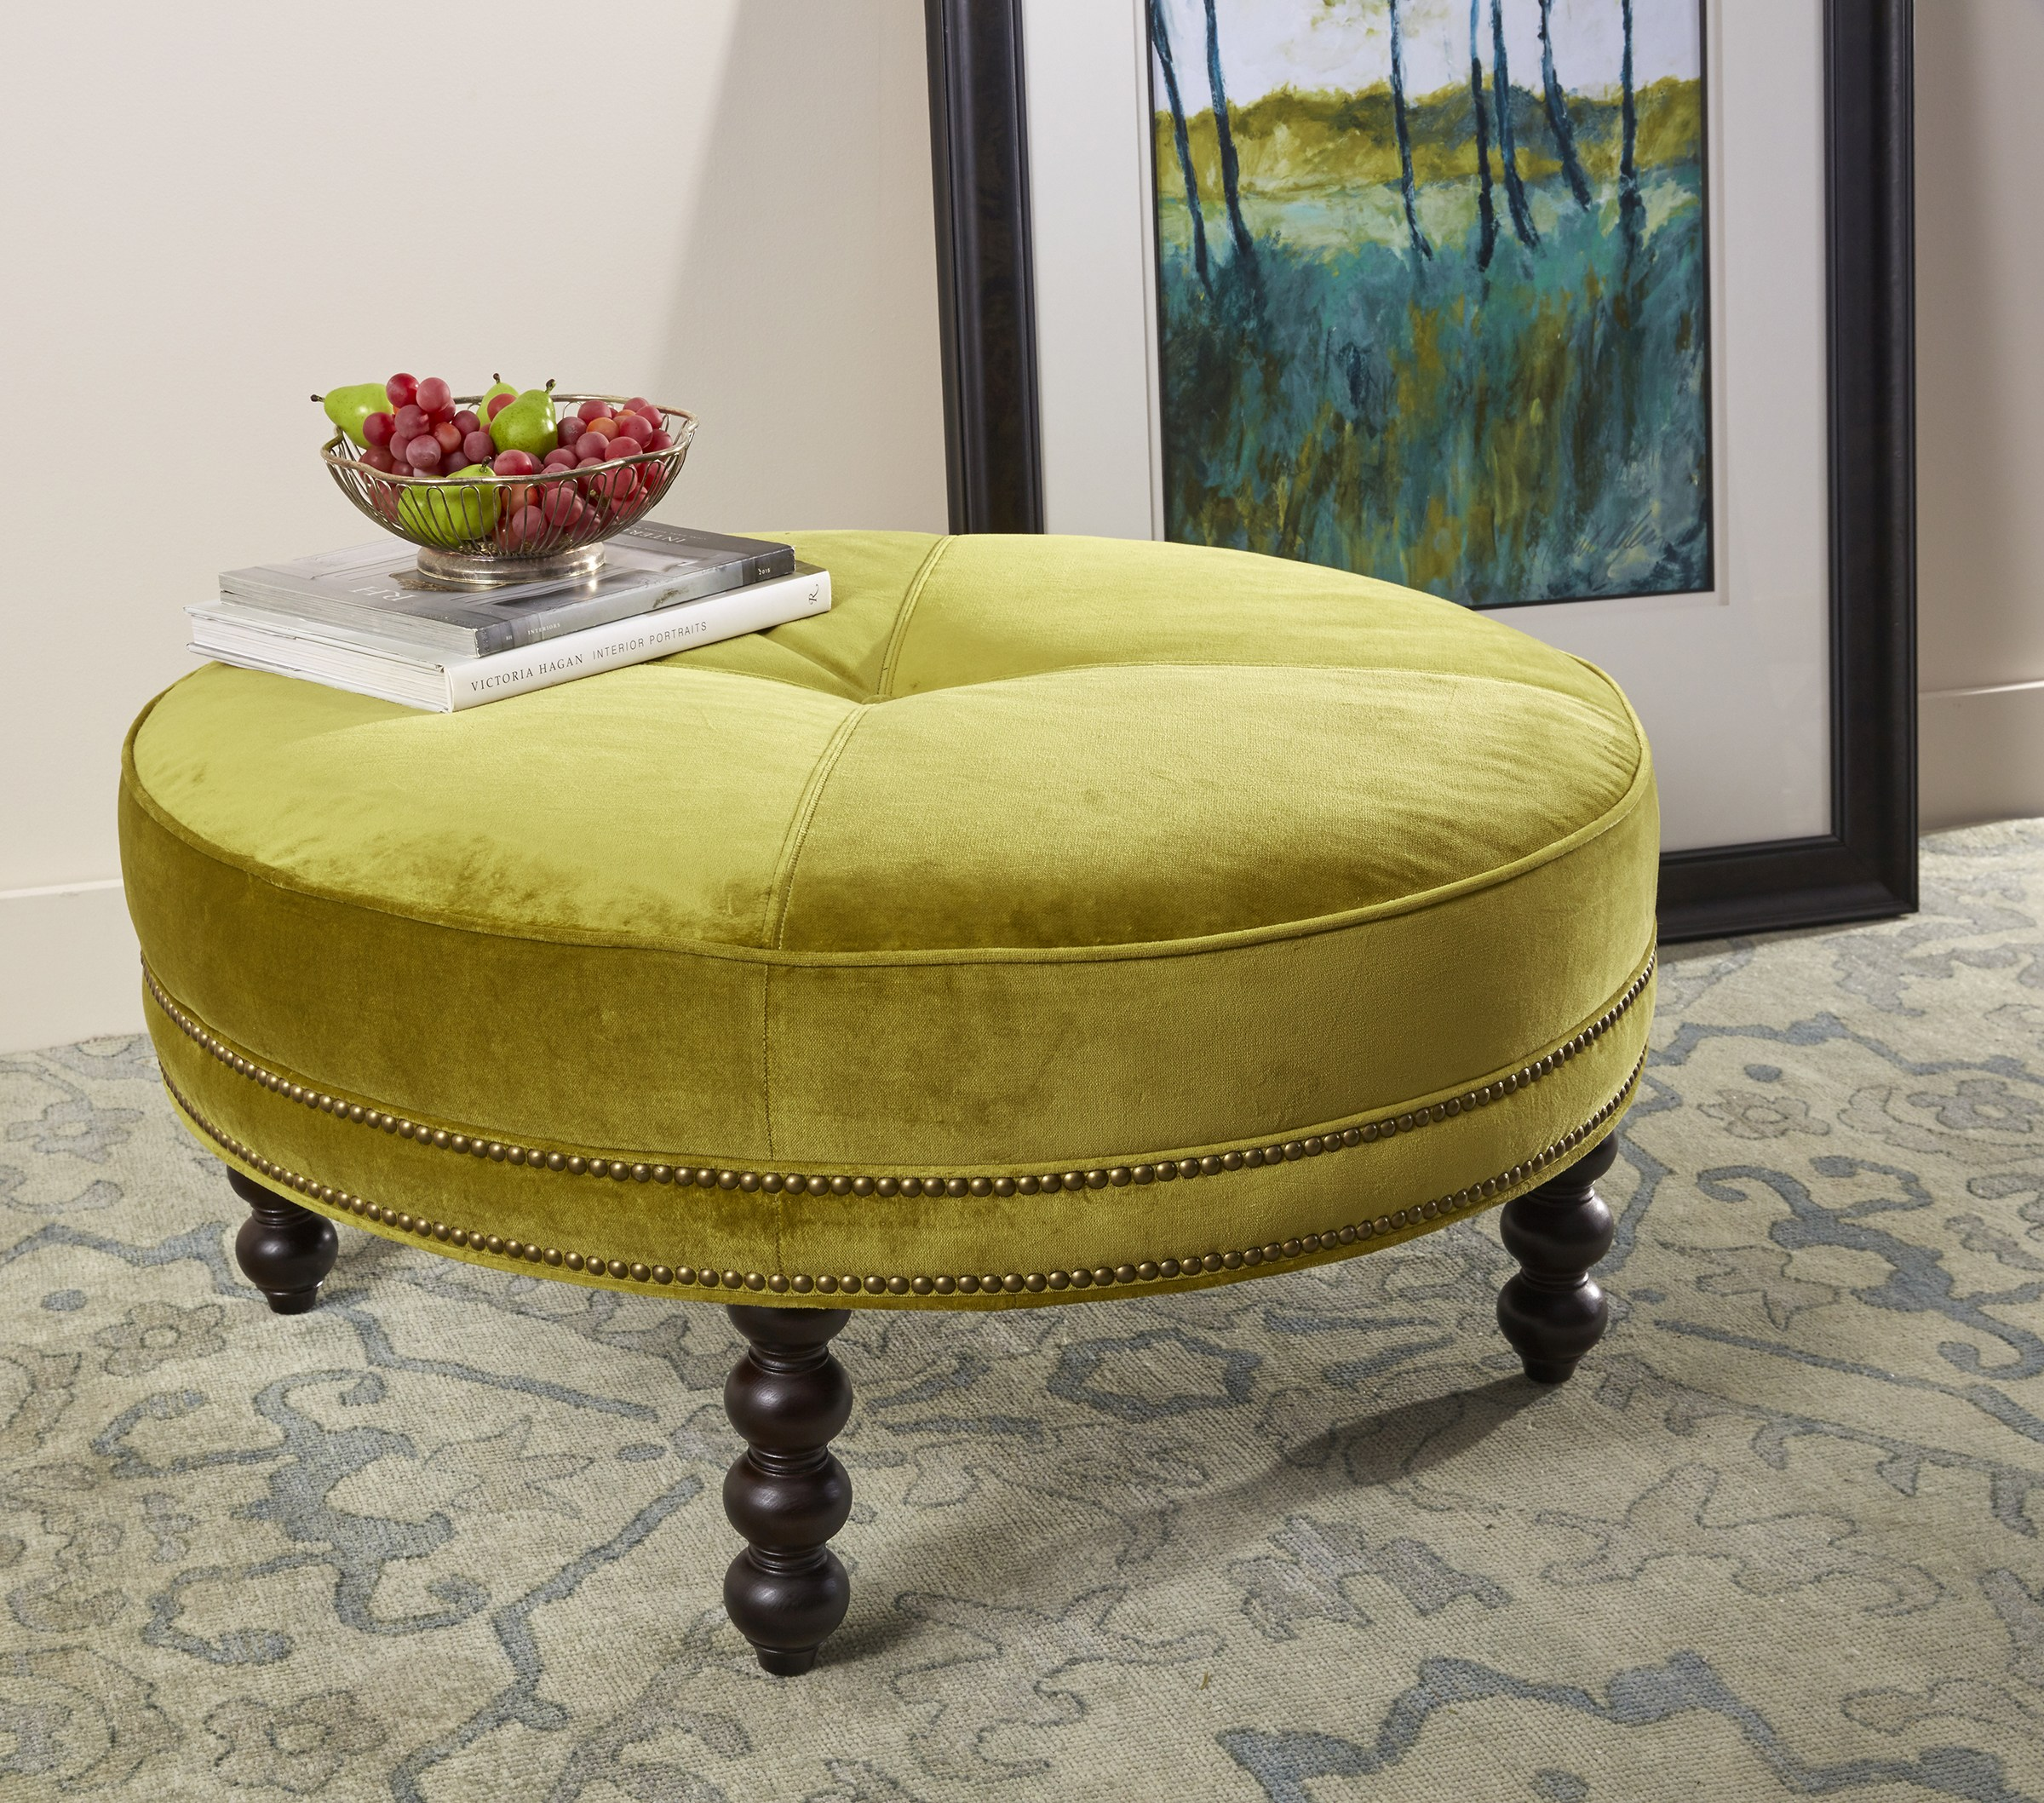 Magnificent Norwalk Furniture Launches Upholstered Ottoman Program At Forskolin Free Trial Chair Design Images Forskolin Free Trialorg